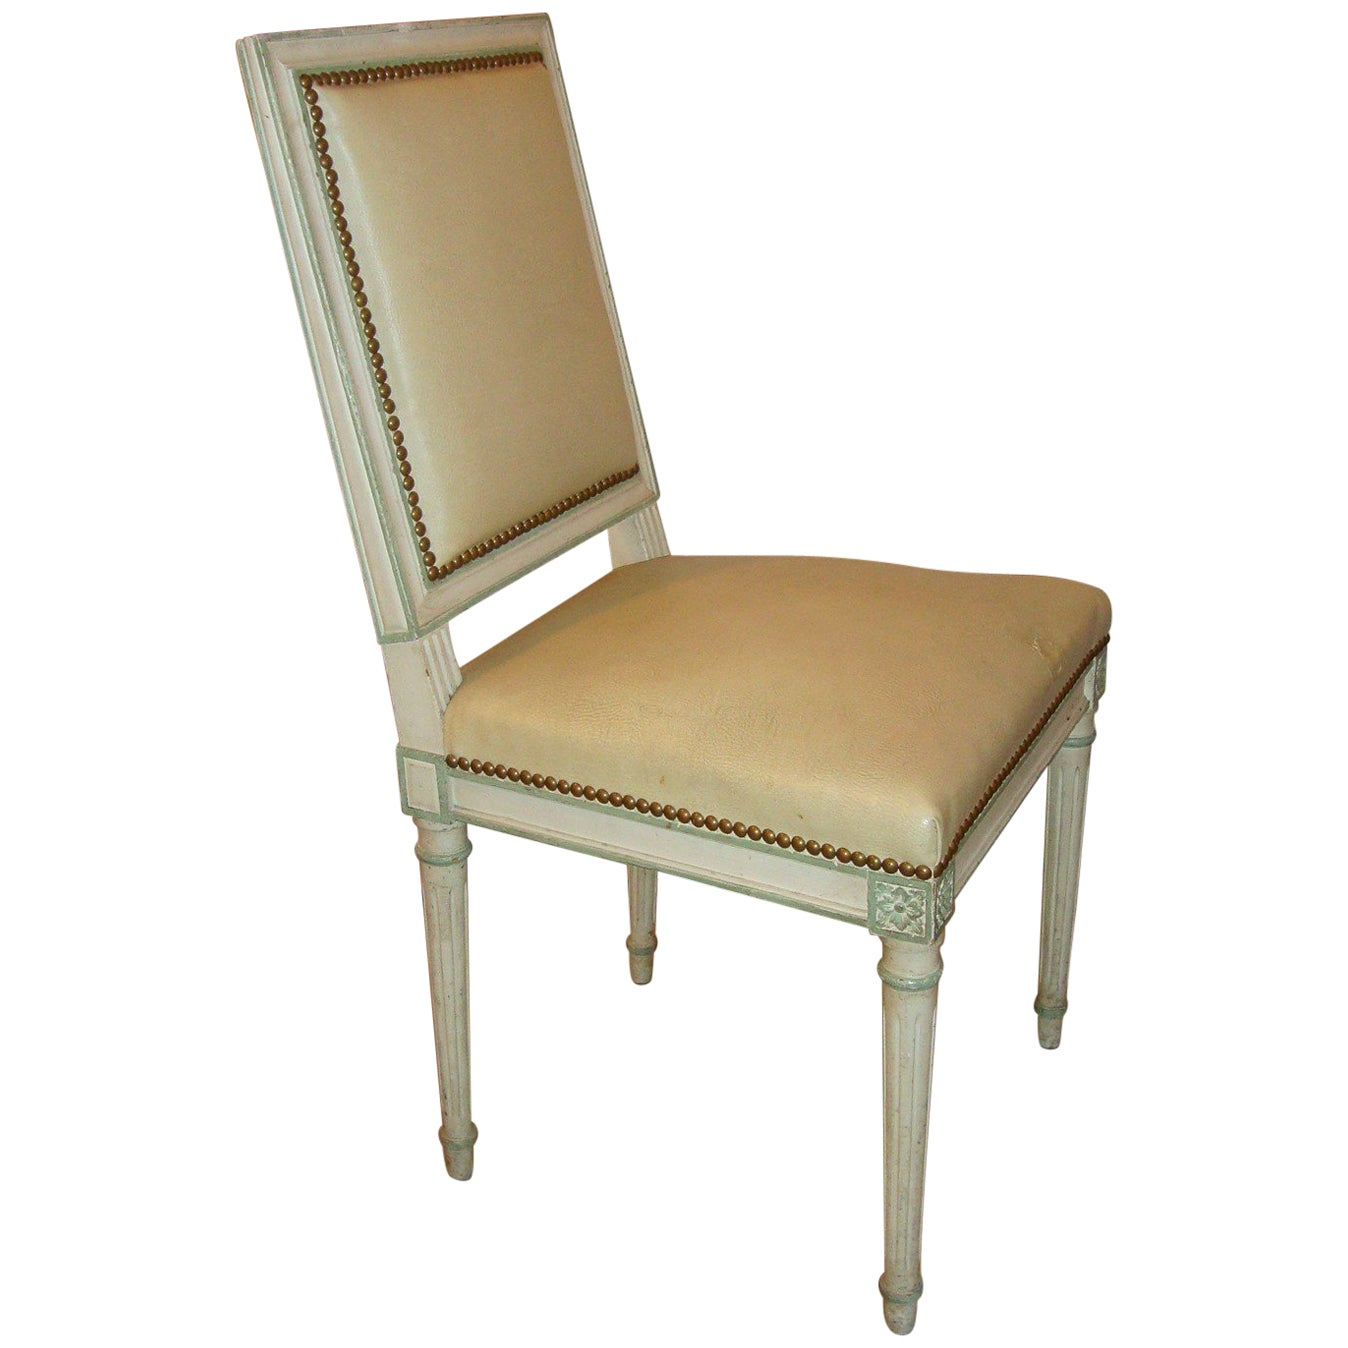 Maison Jansen Paint Decorated Side Chair